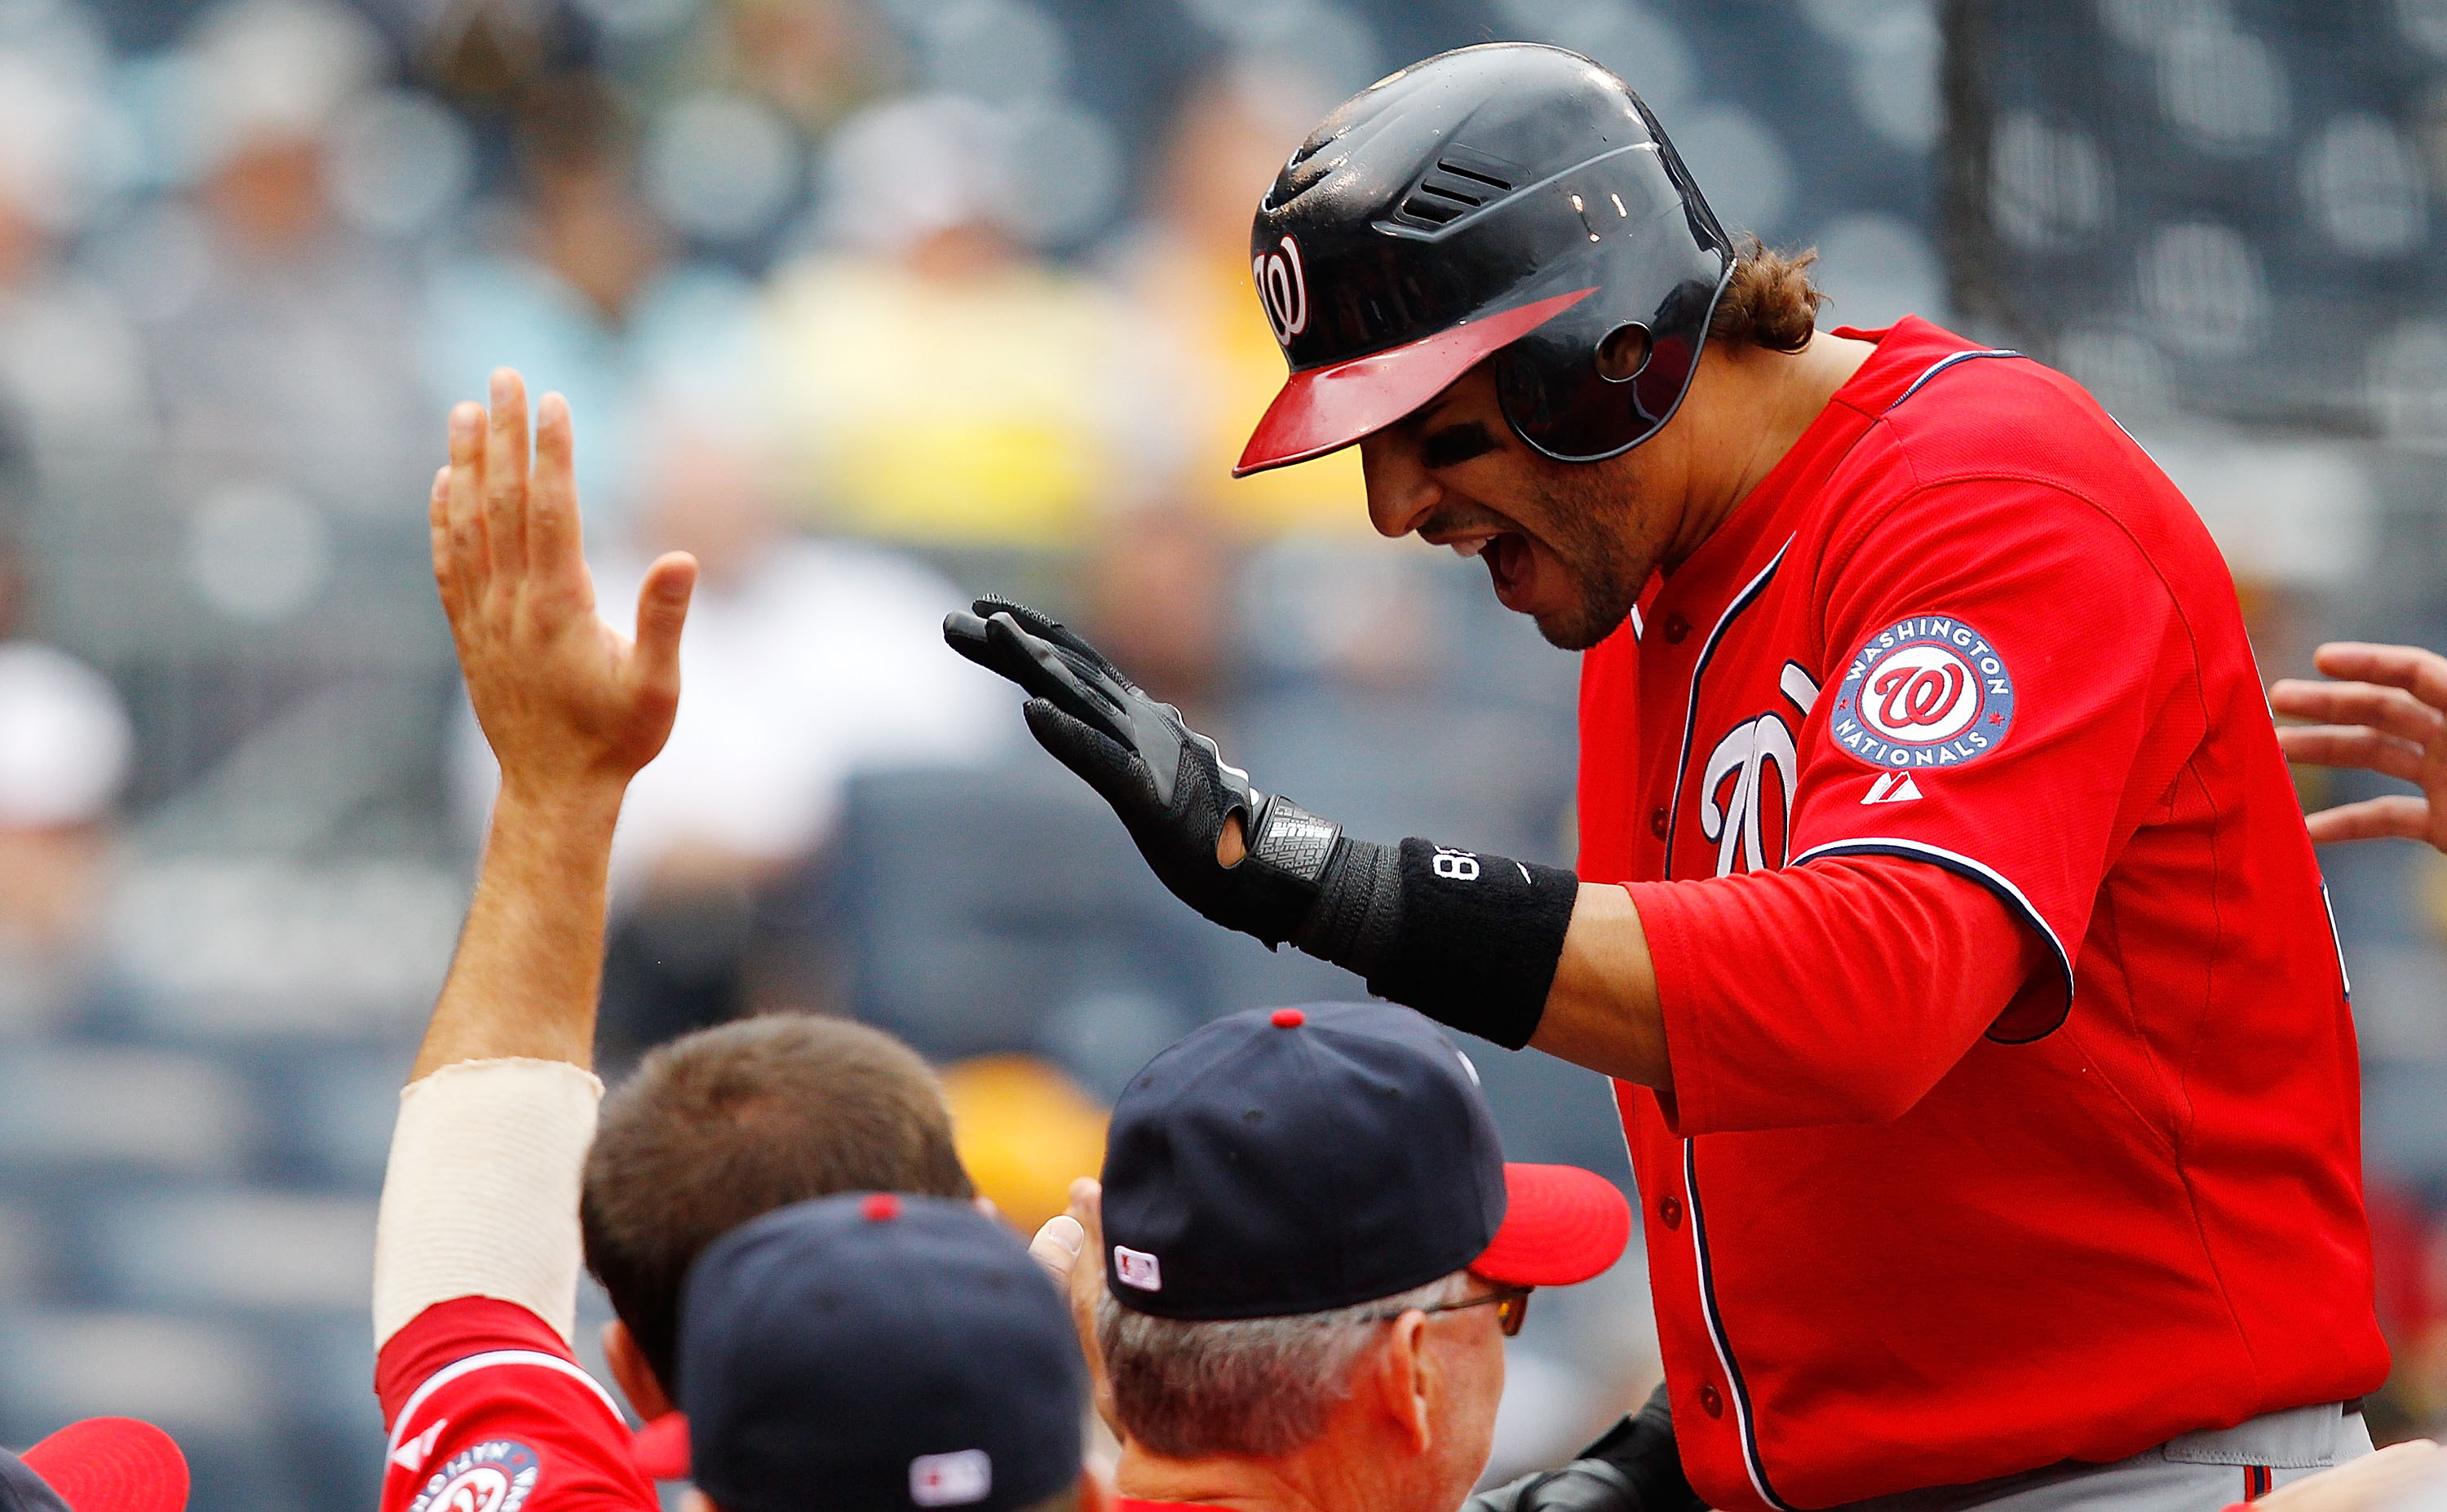 PITTSBURGH - APRIL 24:  Michael Morse #38 of the Washington Nationals celebrates with teammates after hitting a three run home run against the Pittsburgh Pirates during the game on April 24, 2011 at PNC Park in Pittsburgh, Pennsylvania.  (Photo by Jared W